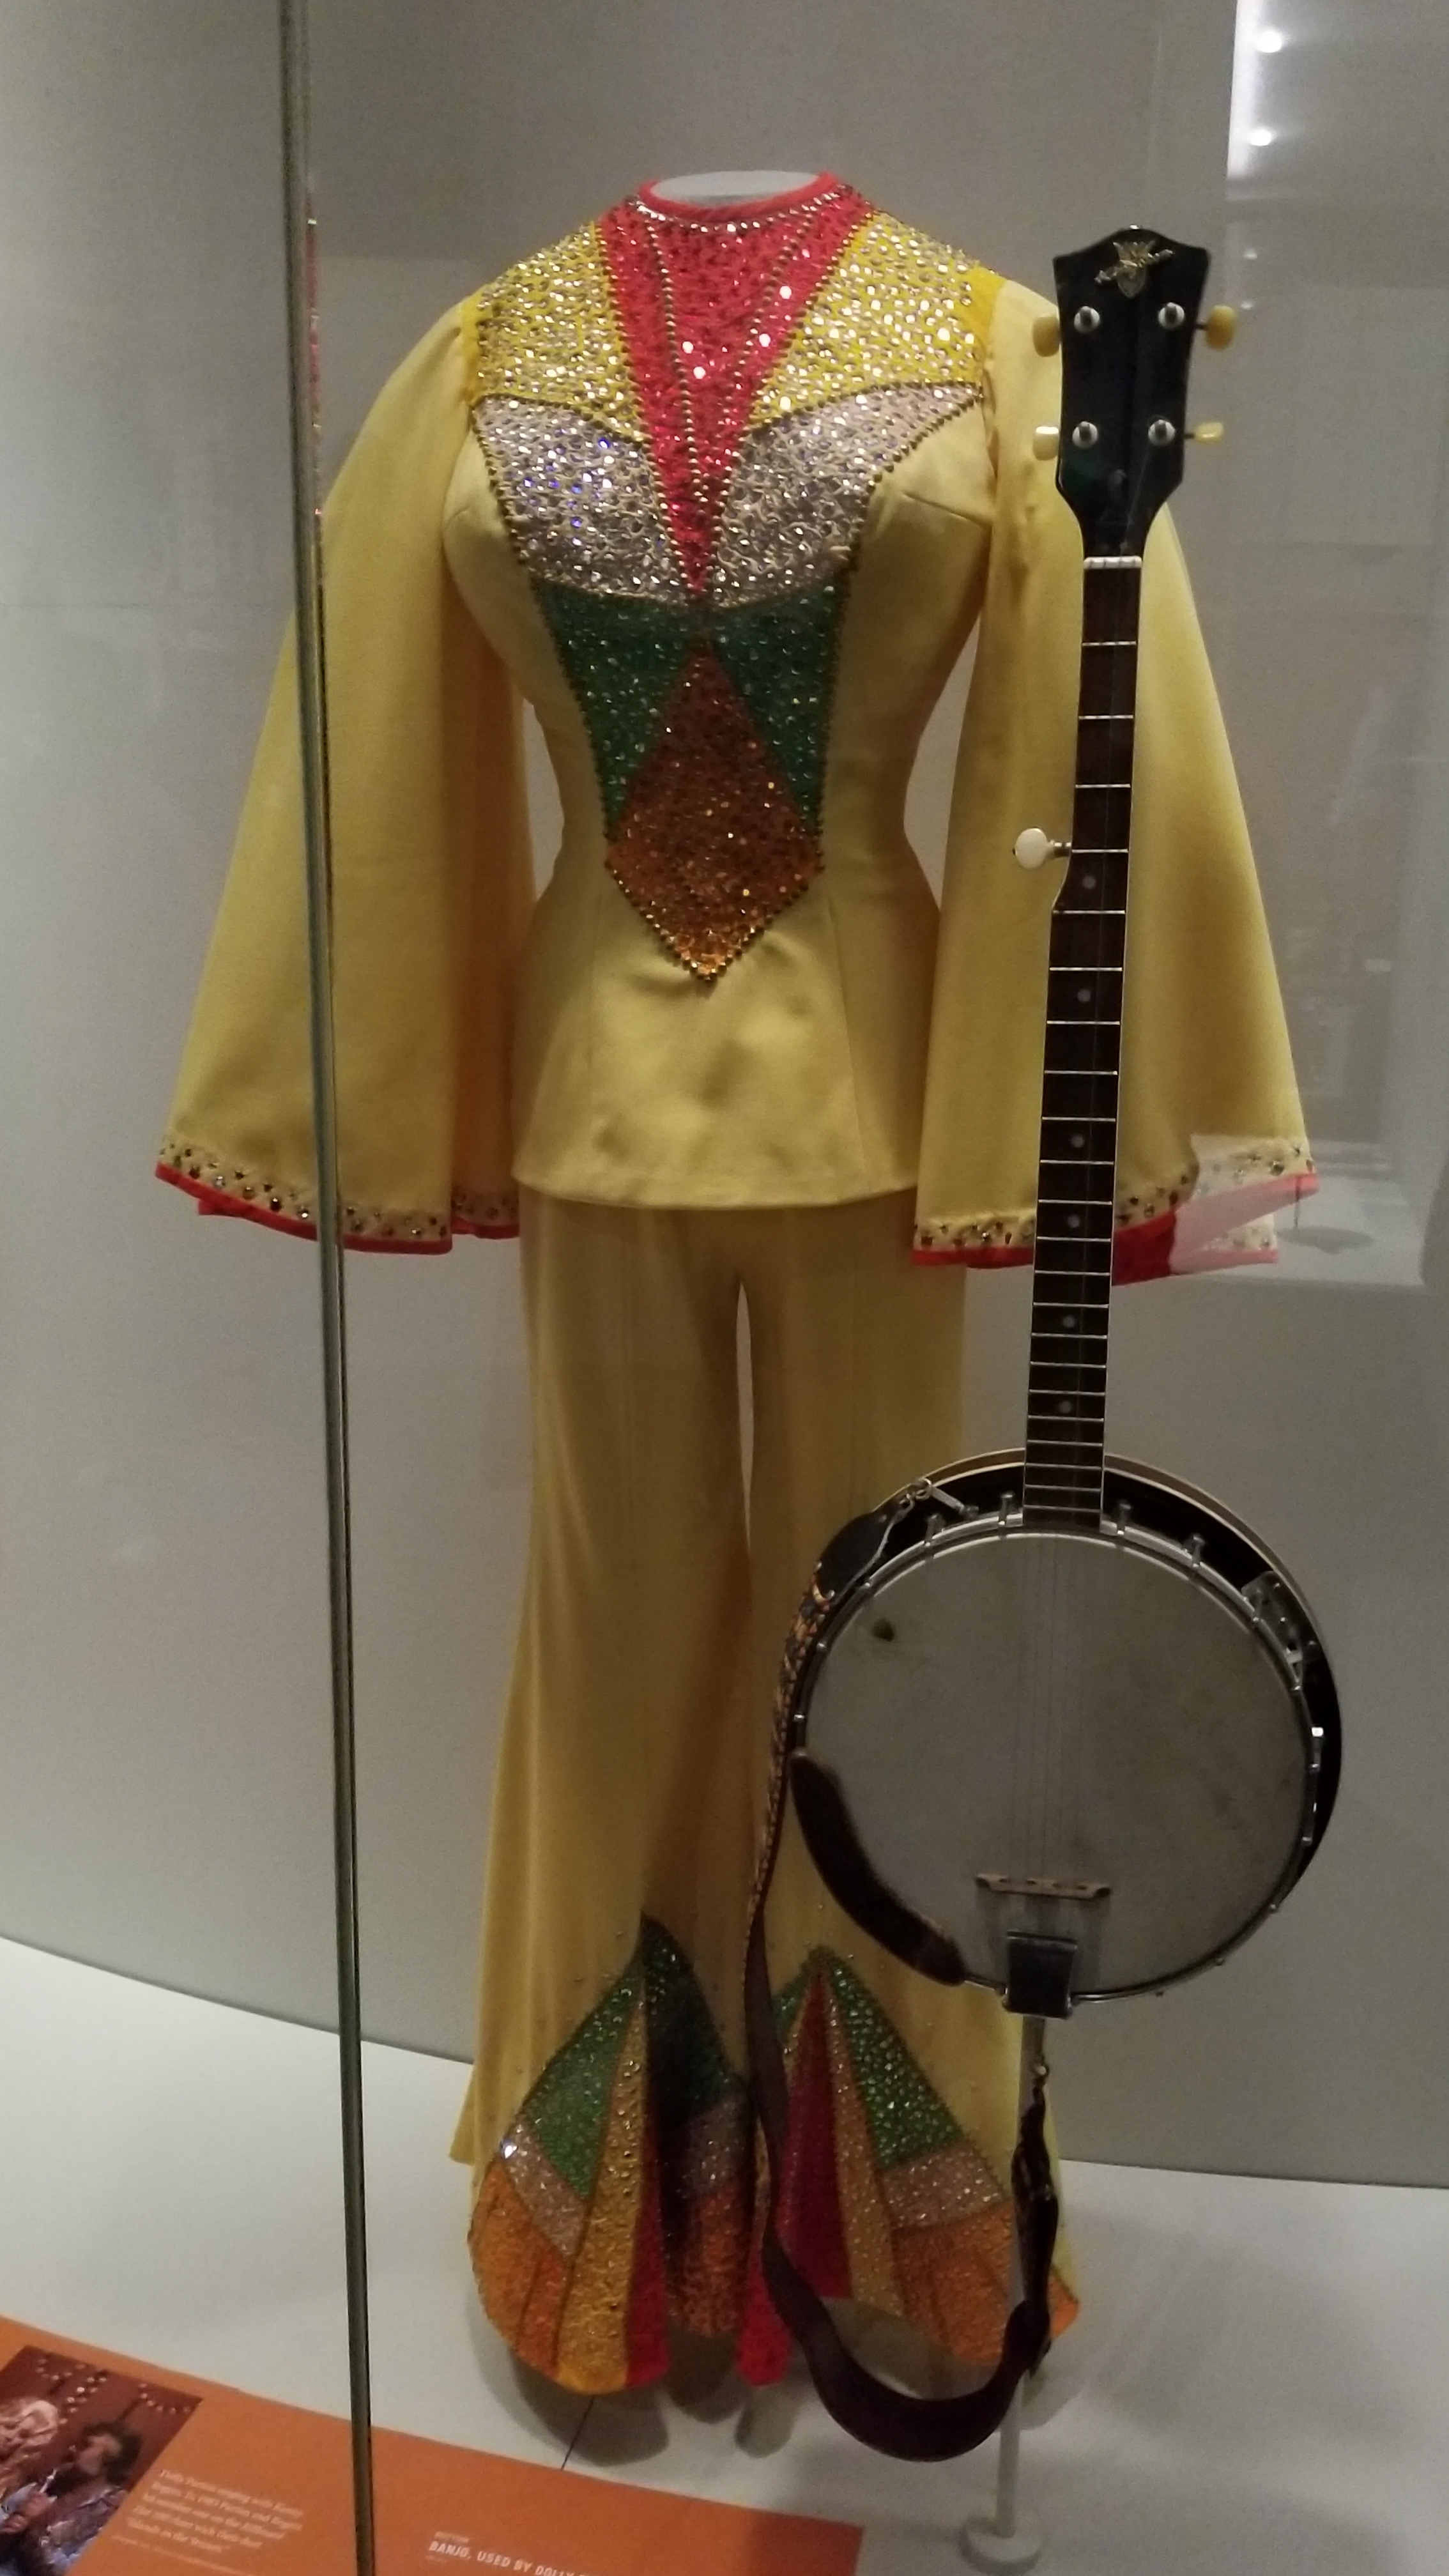 Show attire from Dolly Parton's collection